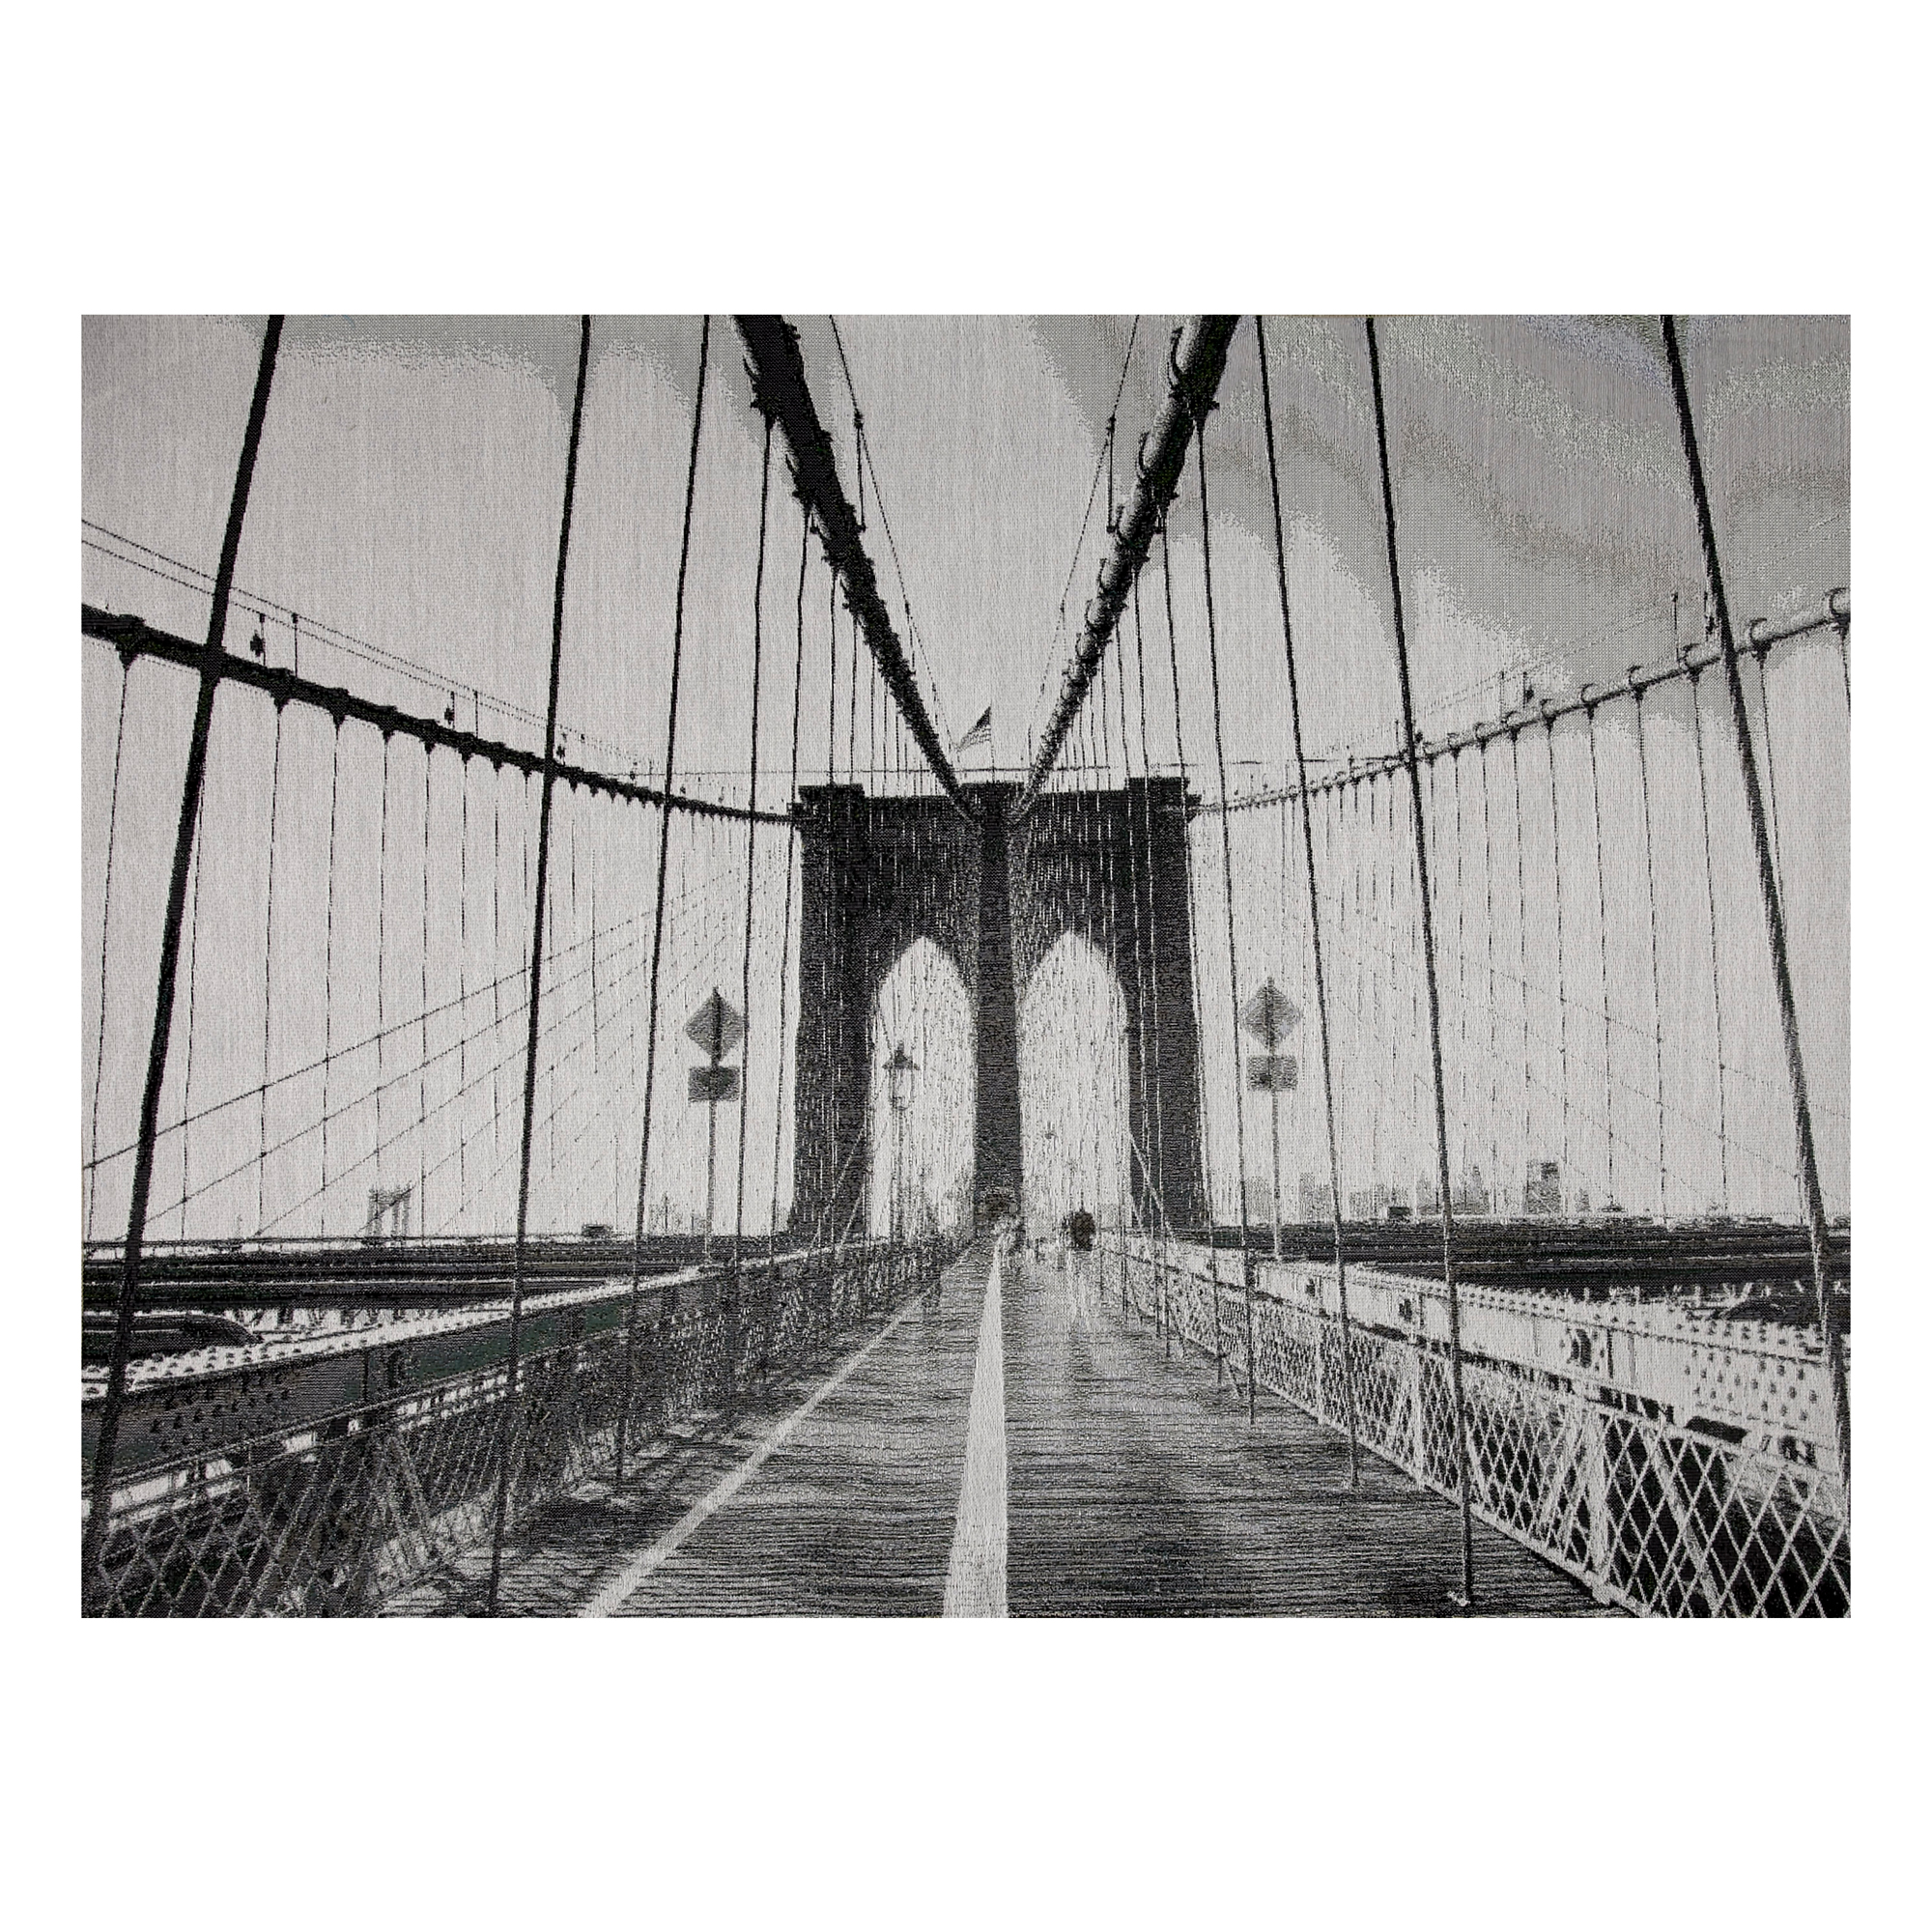 INOpets.com Anything for Pets Parents & Their Pets Photorealism Jacquard Wall Decor/Panel Brooklyn Bridge